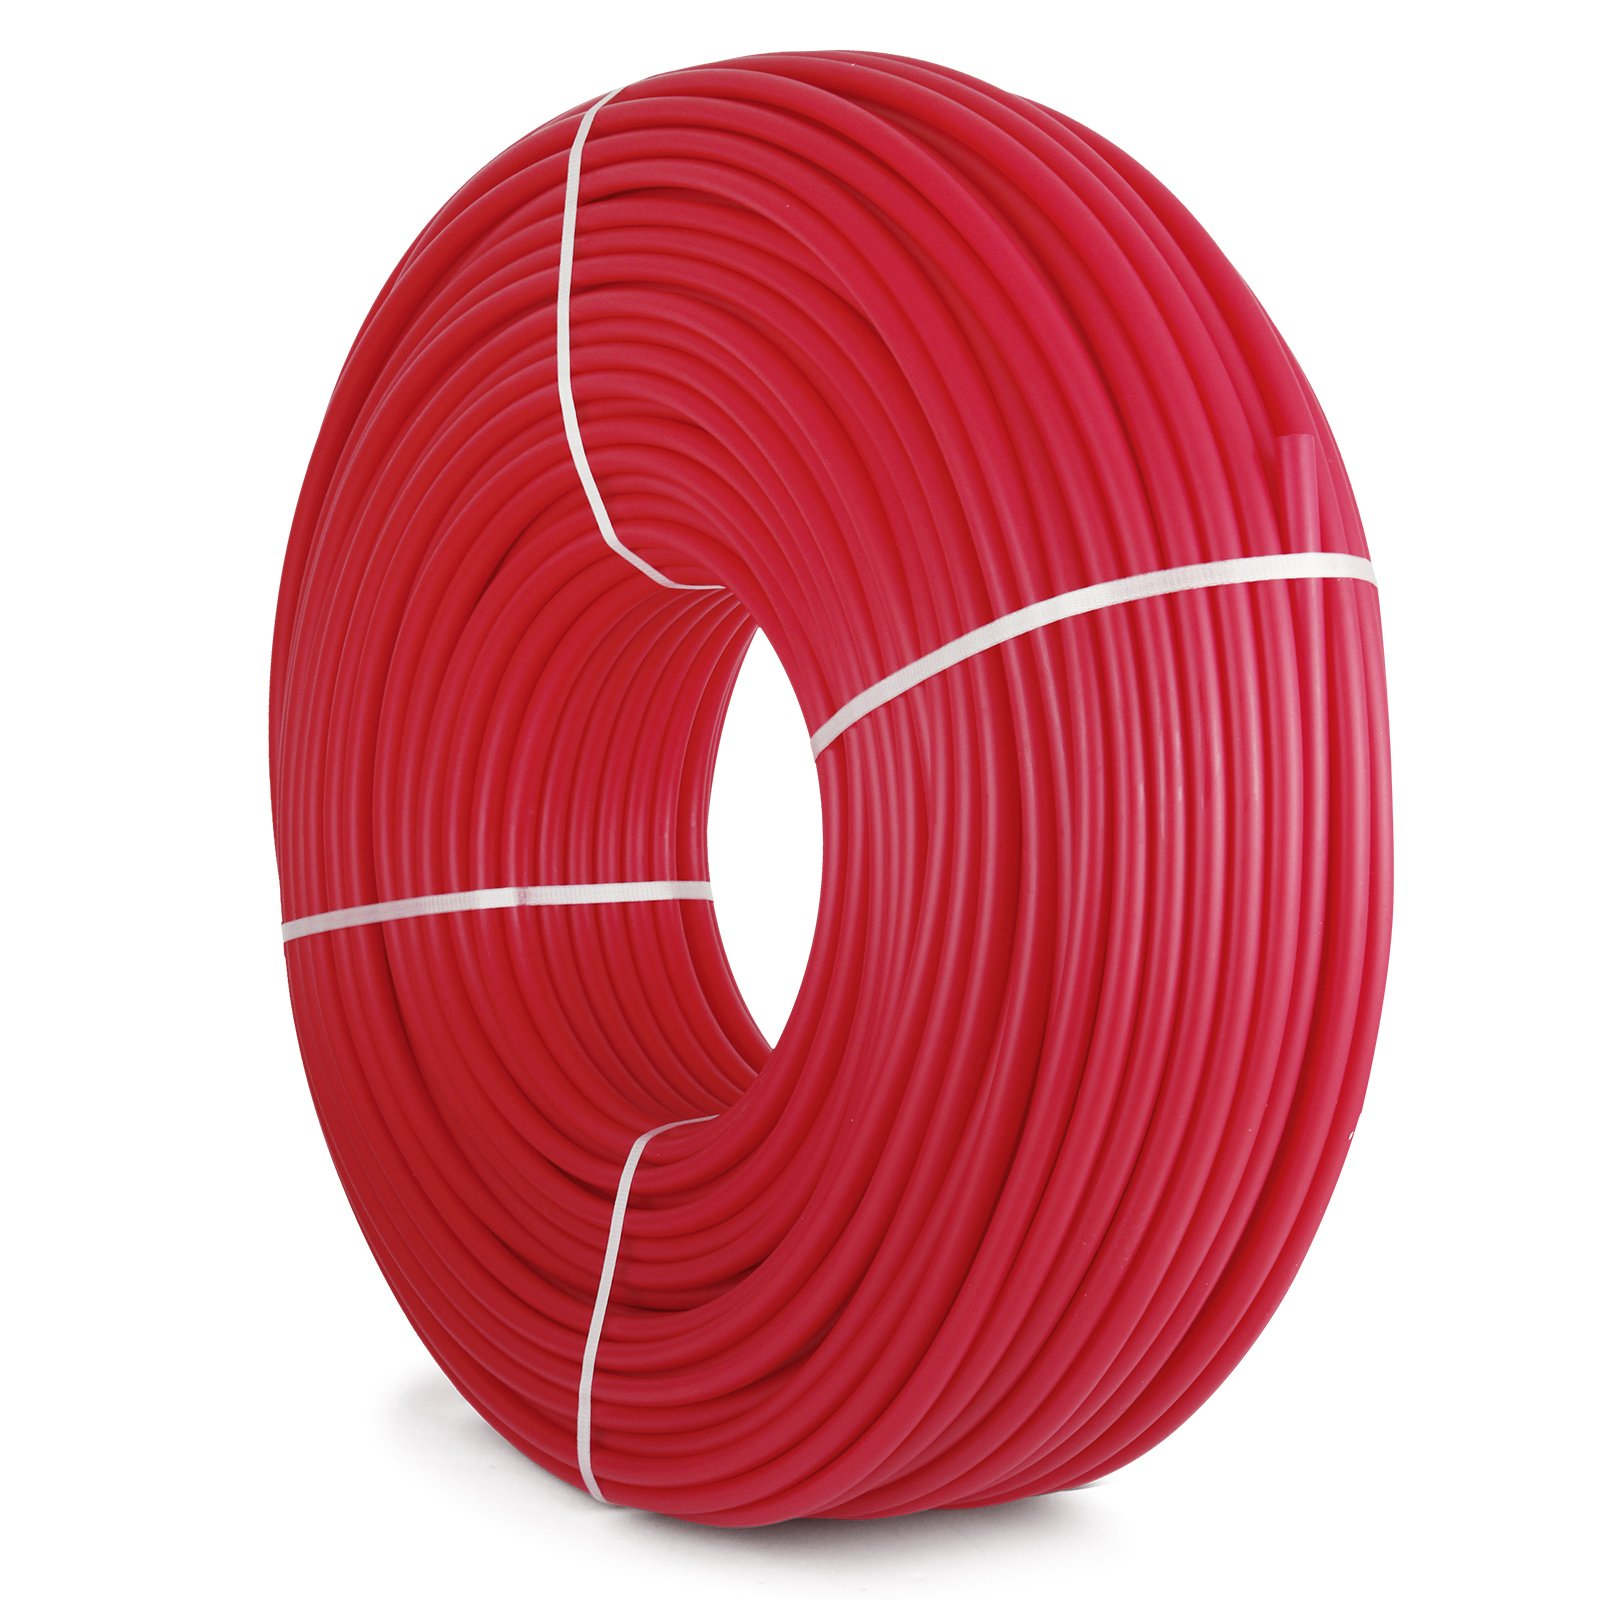 Mophorn Pex Tubing Oxygen Barrier RadiantFloor HeatPex 1/2 Inch 1000ft PexPipe Potable Water Tubing Avirulent Insipidity for Residential and Commercial Water Plumbing Application Red (1000ft)